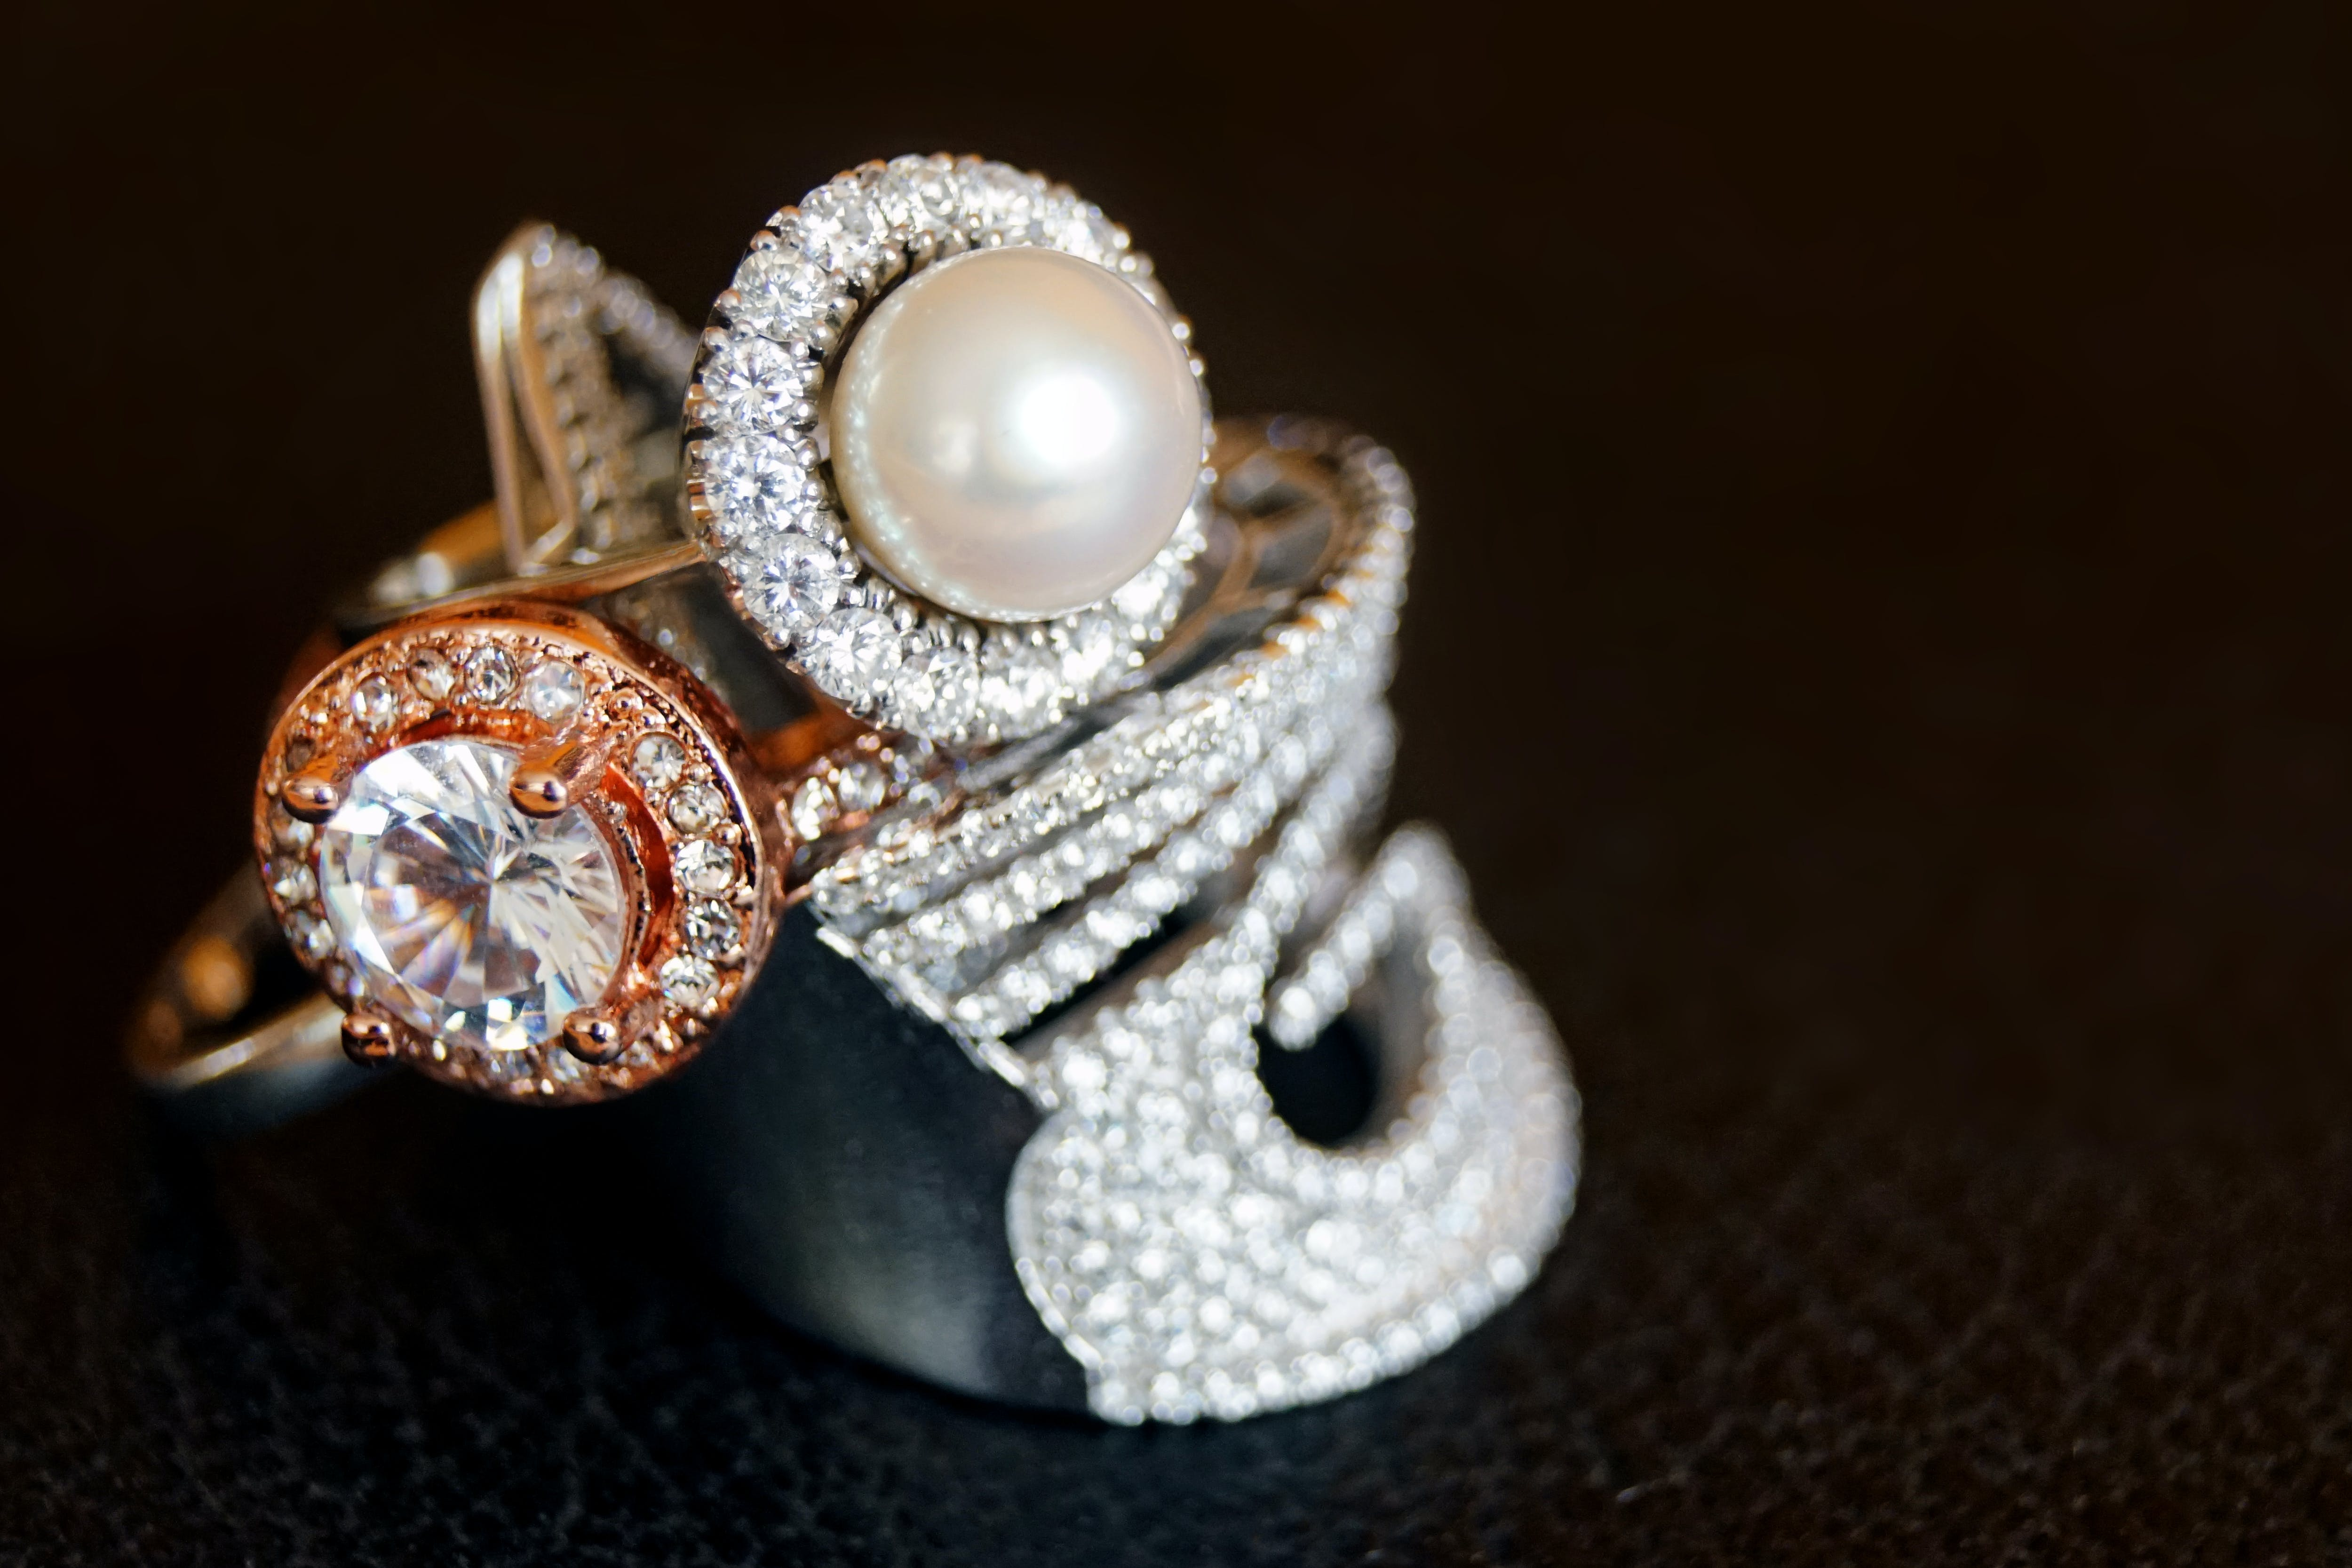 Silver-colored Ring With Clear Gemstone and White Pearl